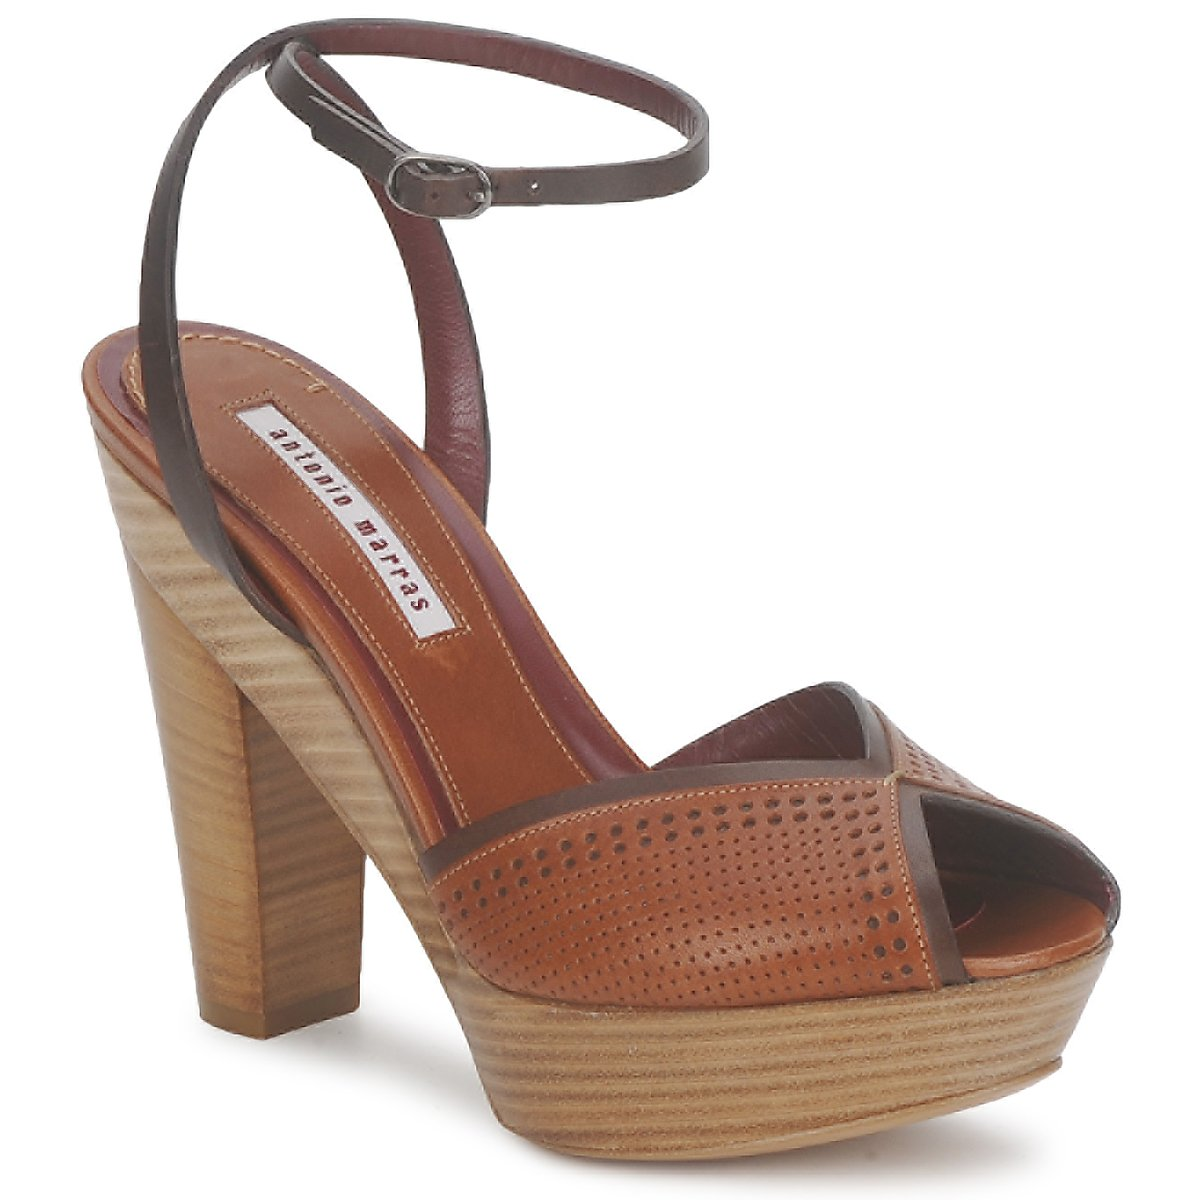 Sandals Antonio Marras 4211 PAYA Brown